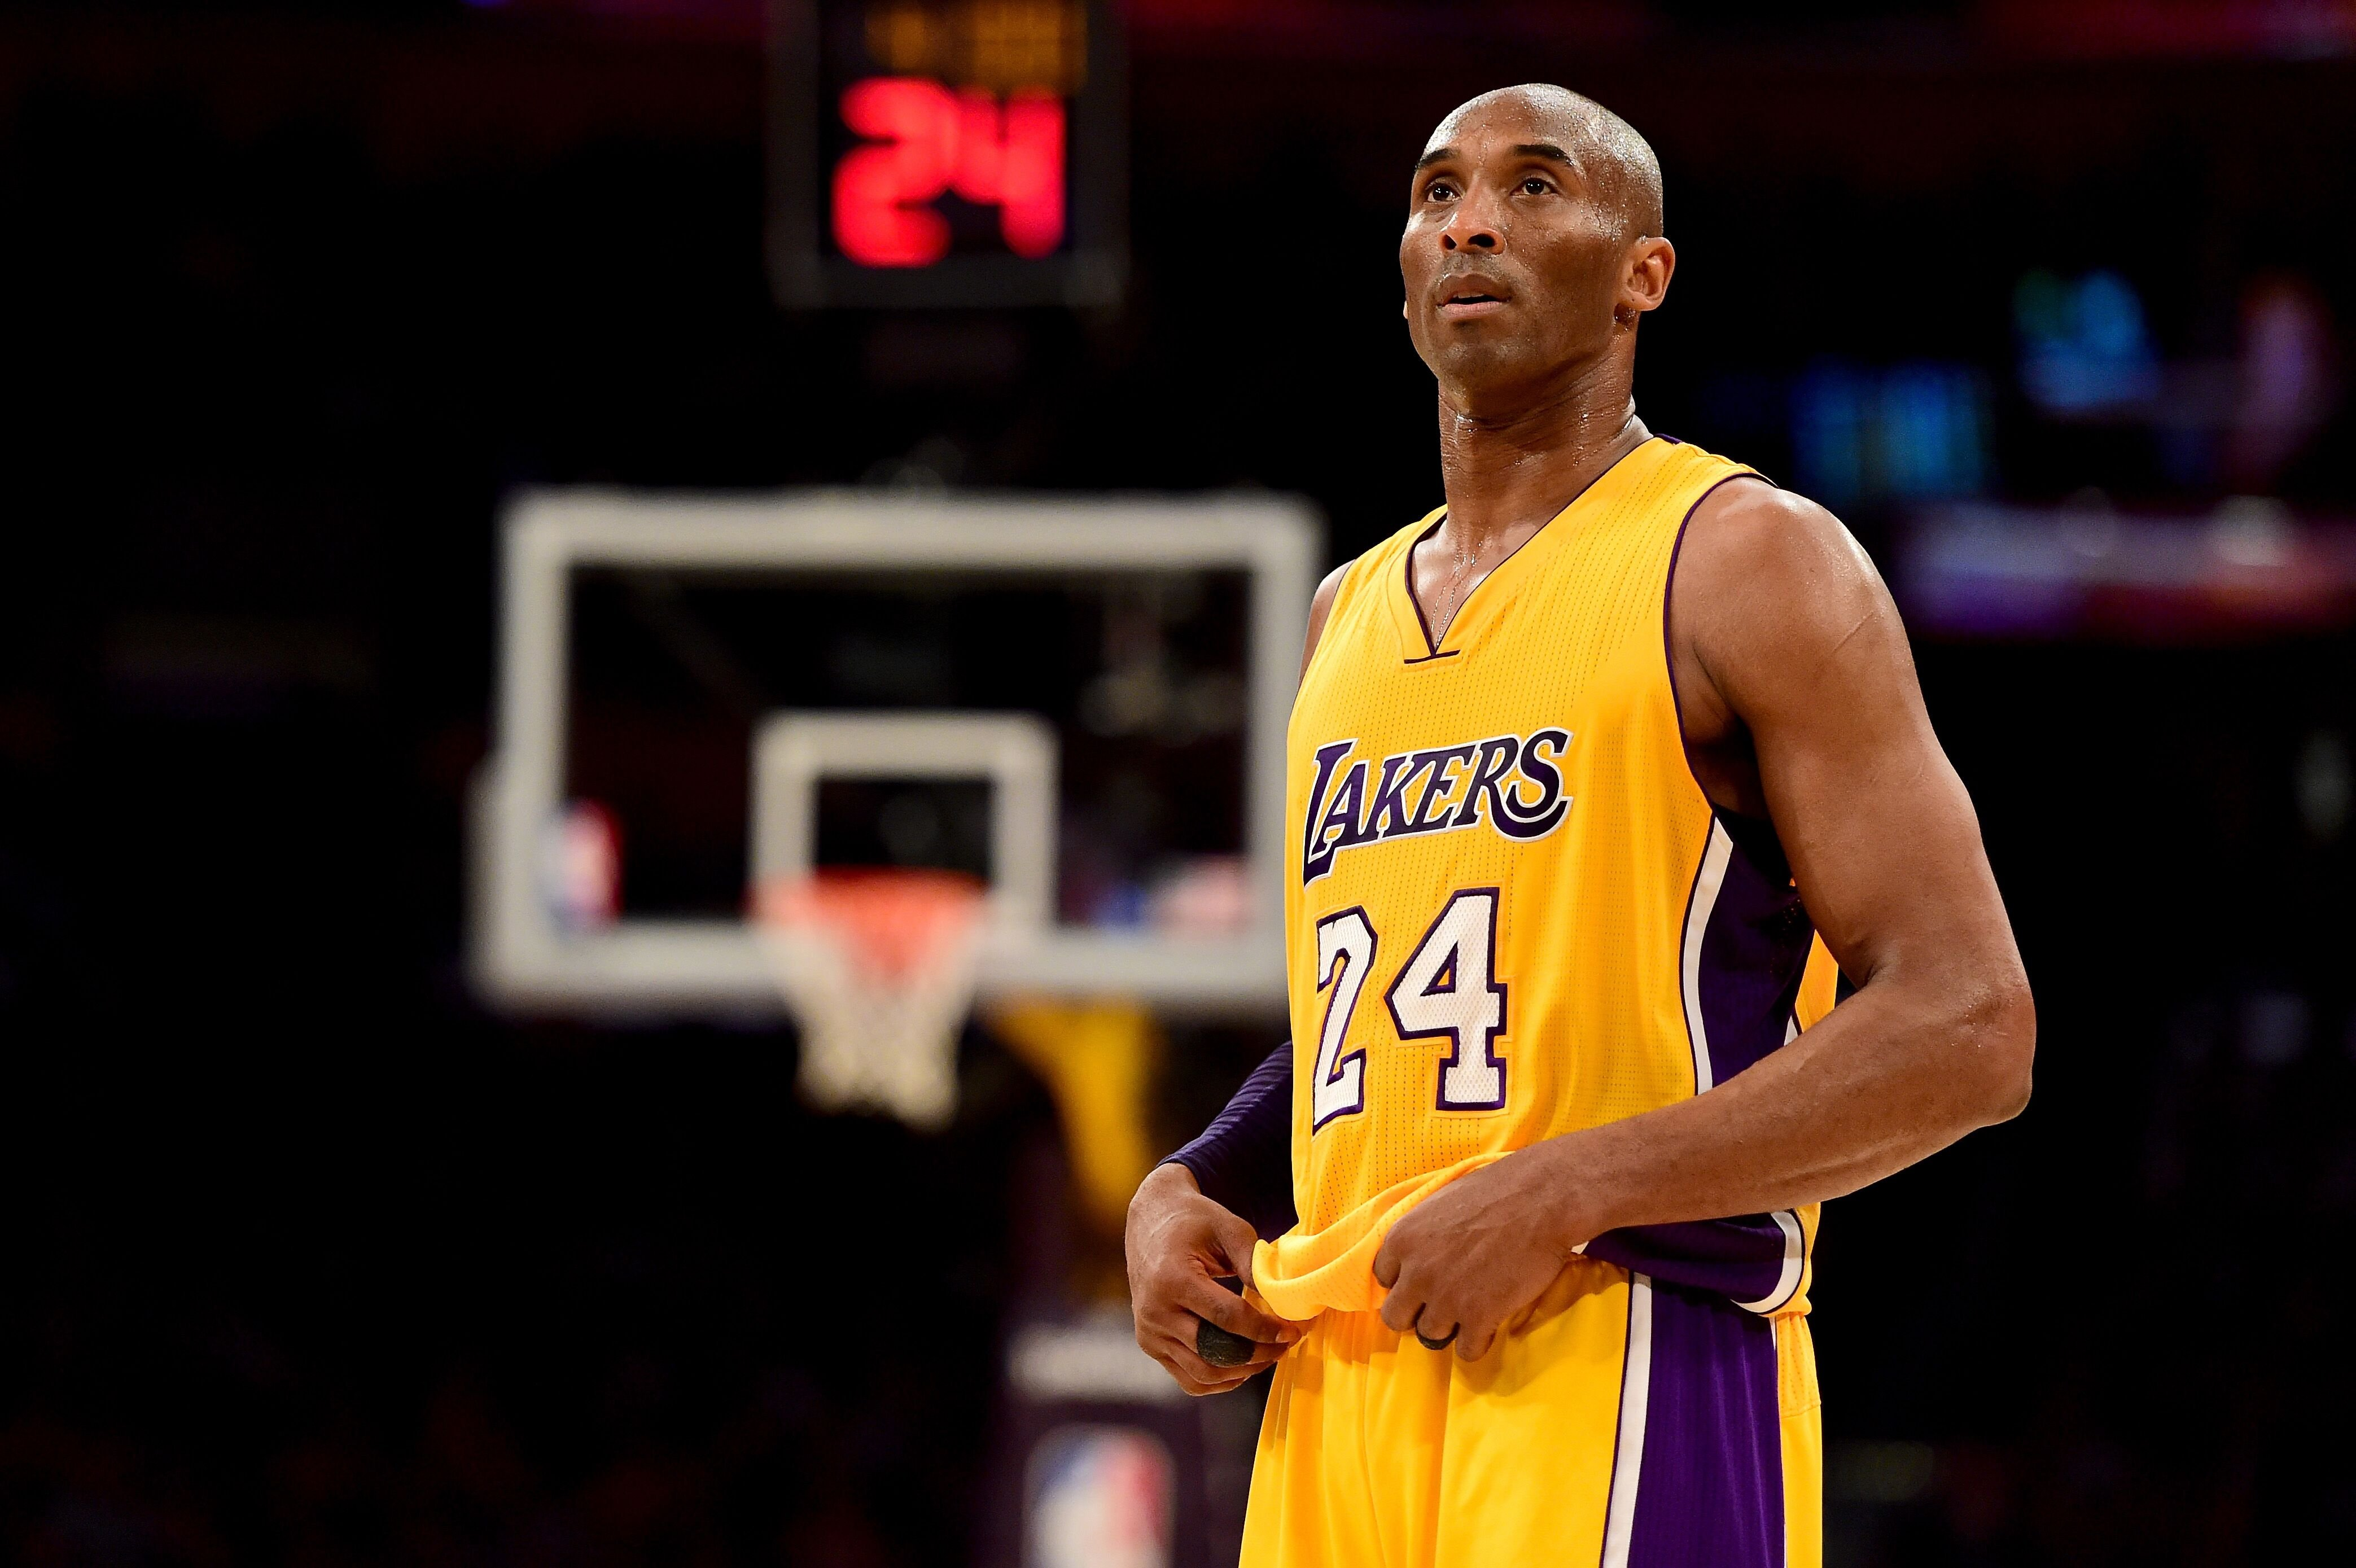 Kobe Bryant #24 of the Los Angeles Lakers reacts while taking on the Utah Jazz at Staples Center | Photo: Getty Images